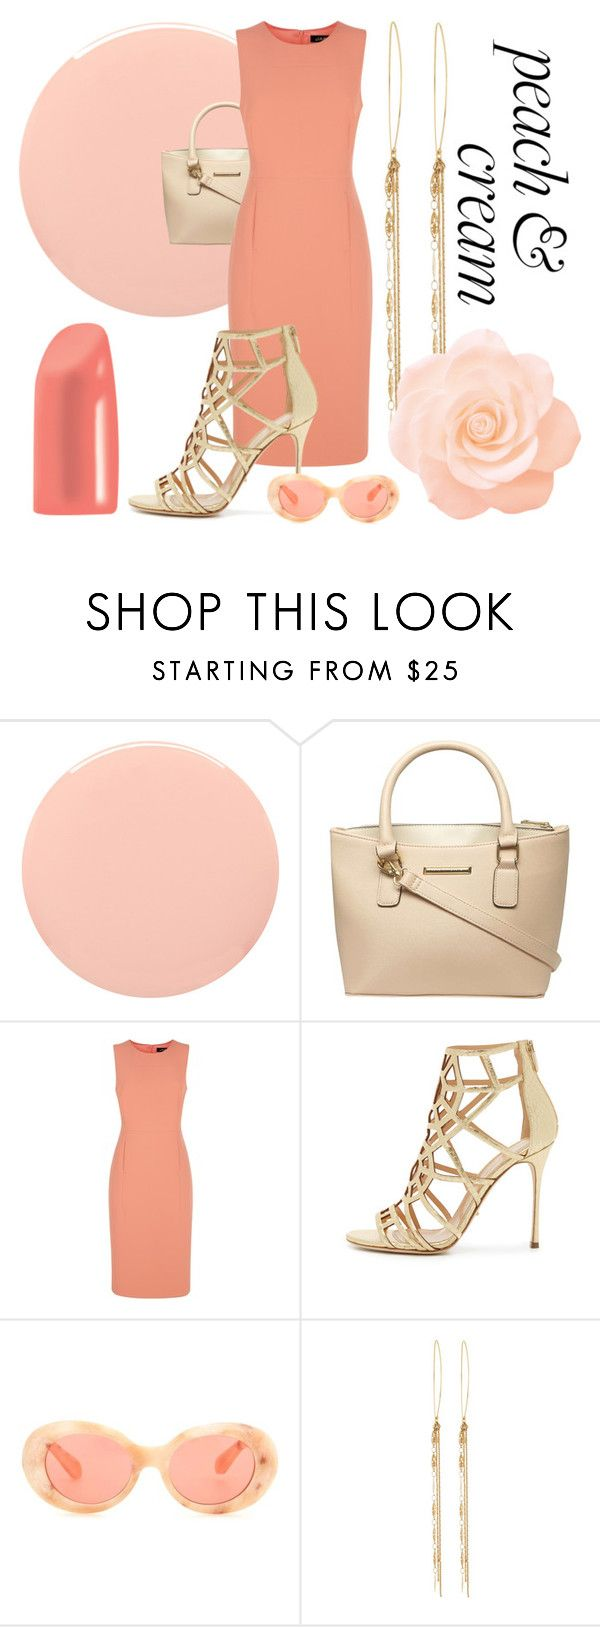 """Peach & Cream "" by stels-kal ❤ liked on Polyvore featuring Smith & Cult, Dorothy Perkins, Jaeger, Sergio Rossi, Acne Studios and Lydell NYC"